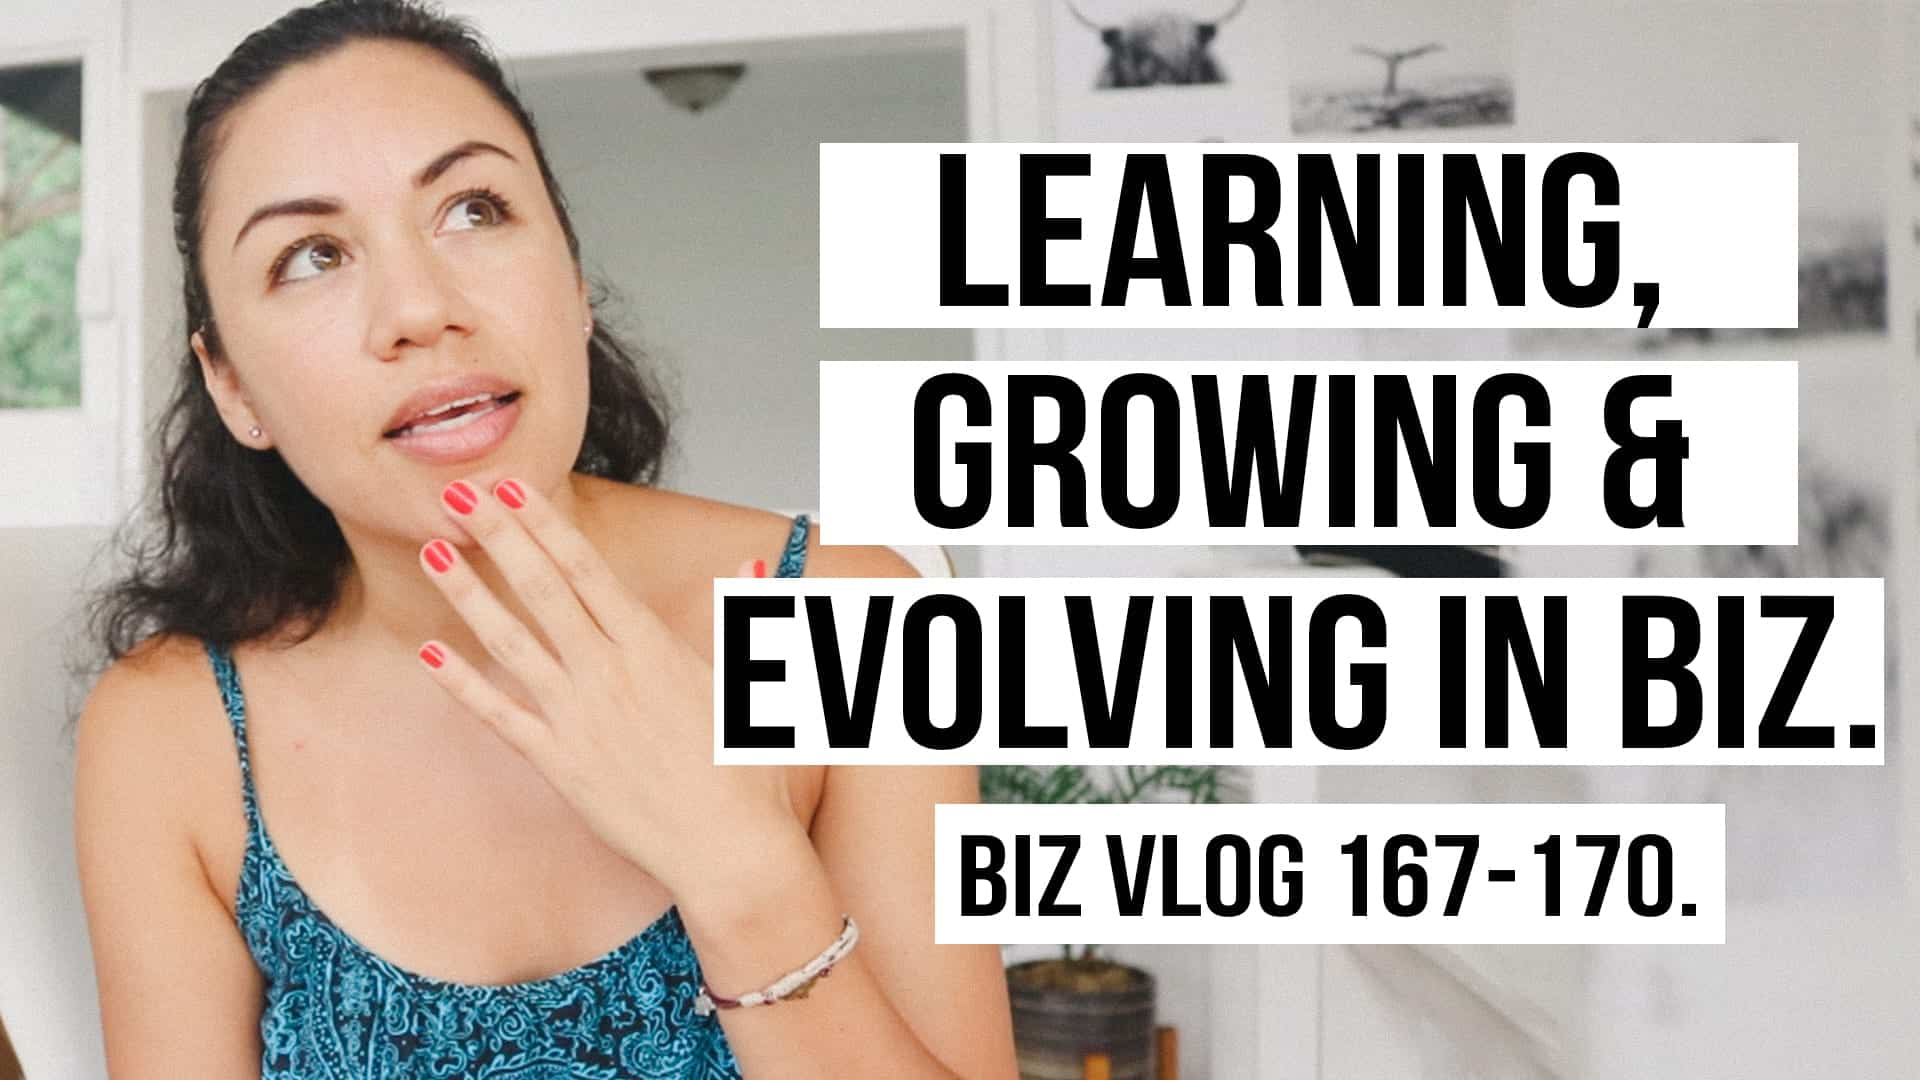 LEARNING, GROWING AND EVOLVING AS AN ASPIRING ENTREPRENEUR. BIZ VLOG 167-170.